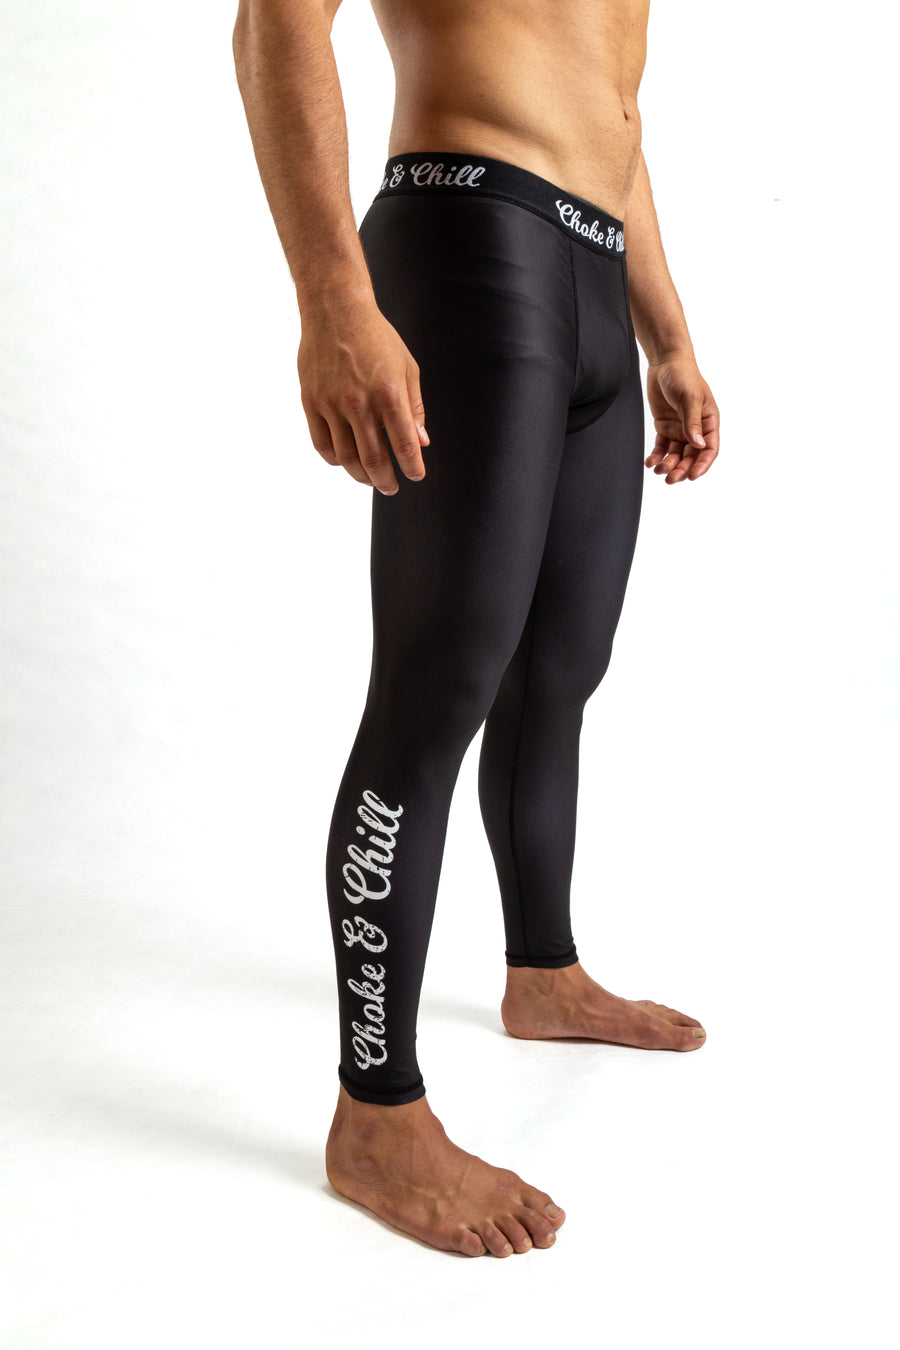 Spats black men fightwear training leggins BJJ No Gi Grappling Brazilian Jiu Jitsu MMA Kampfsport Martial Arts